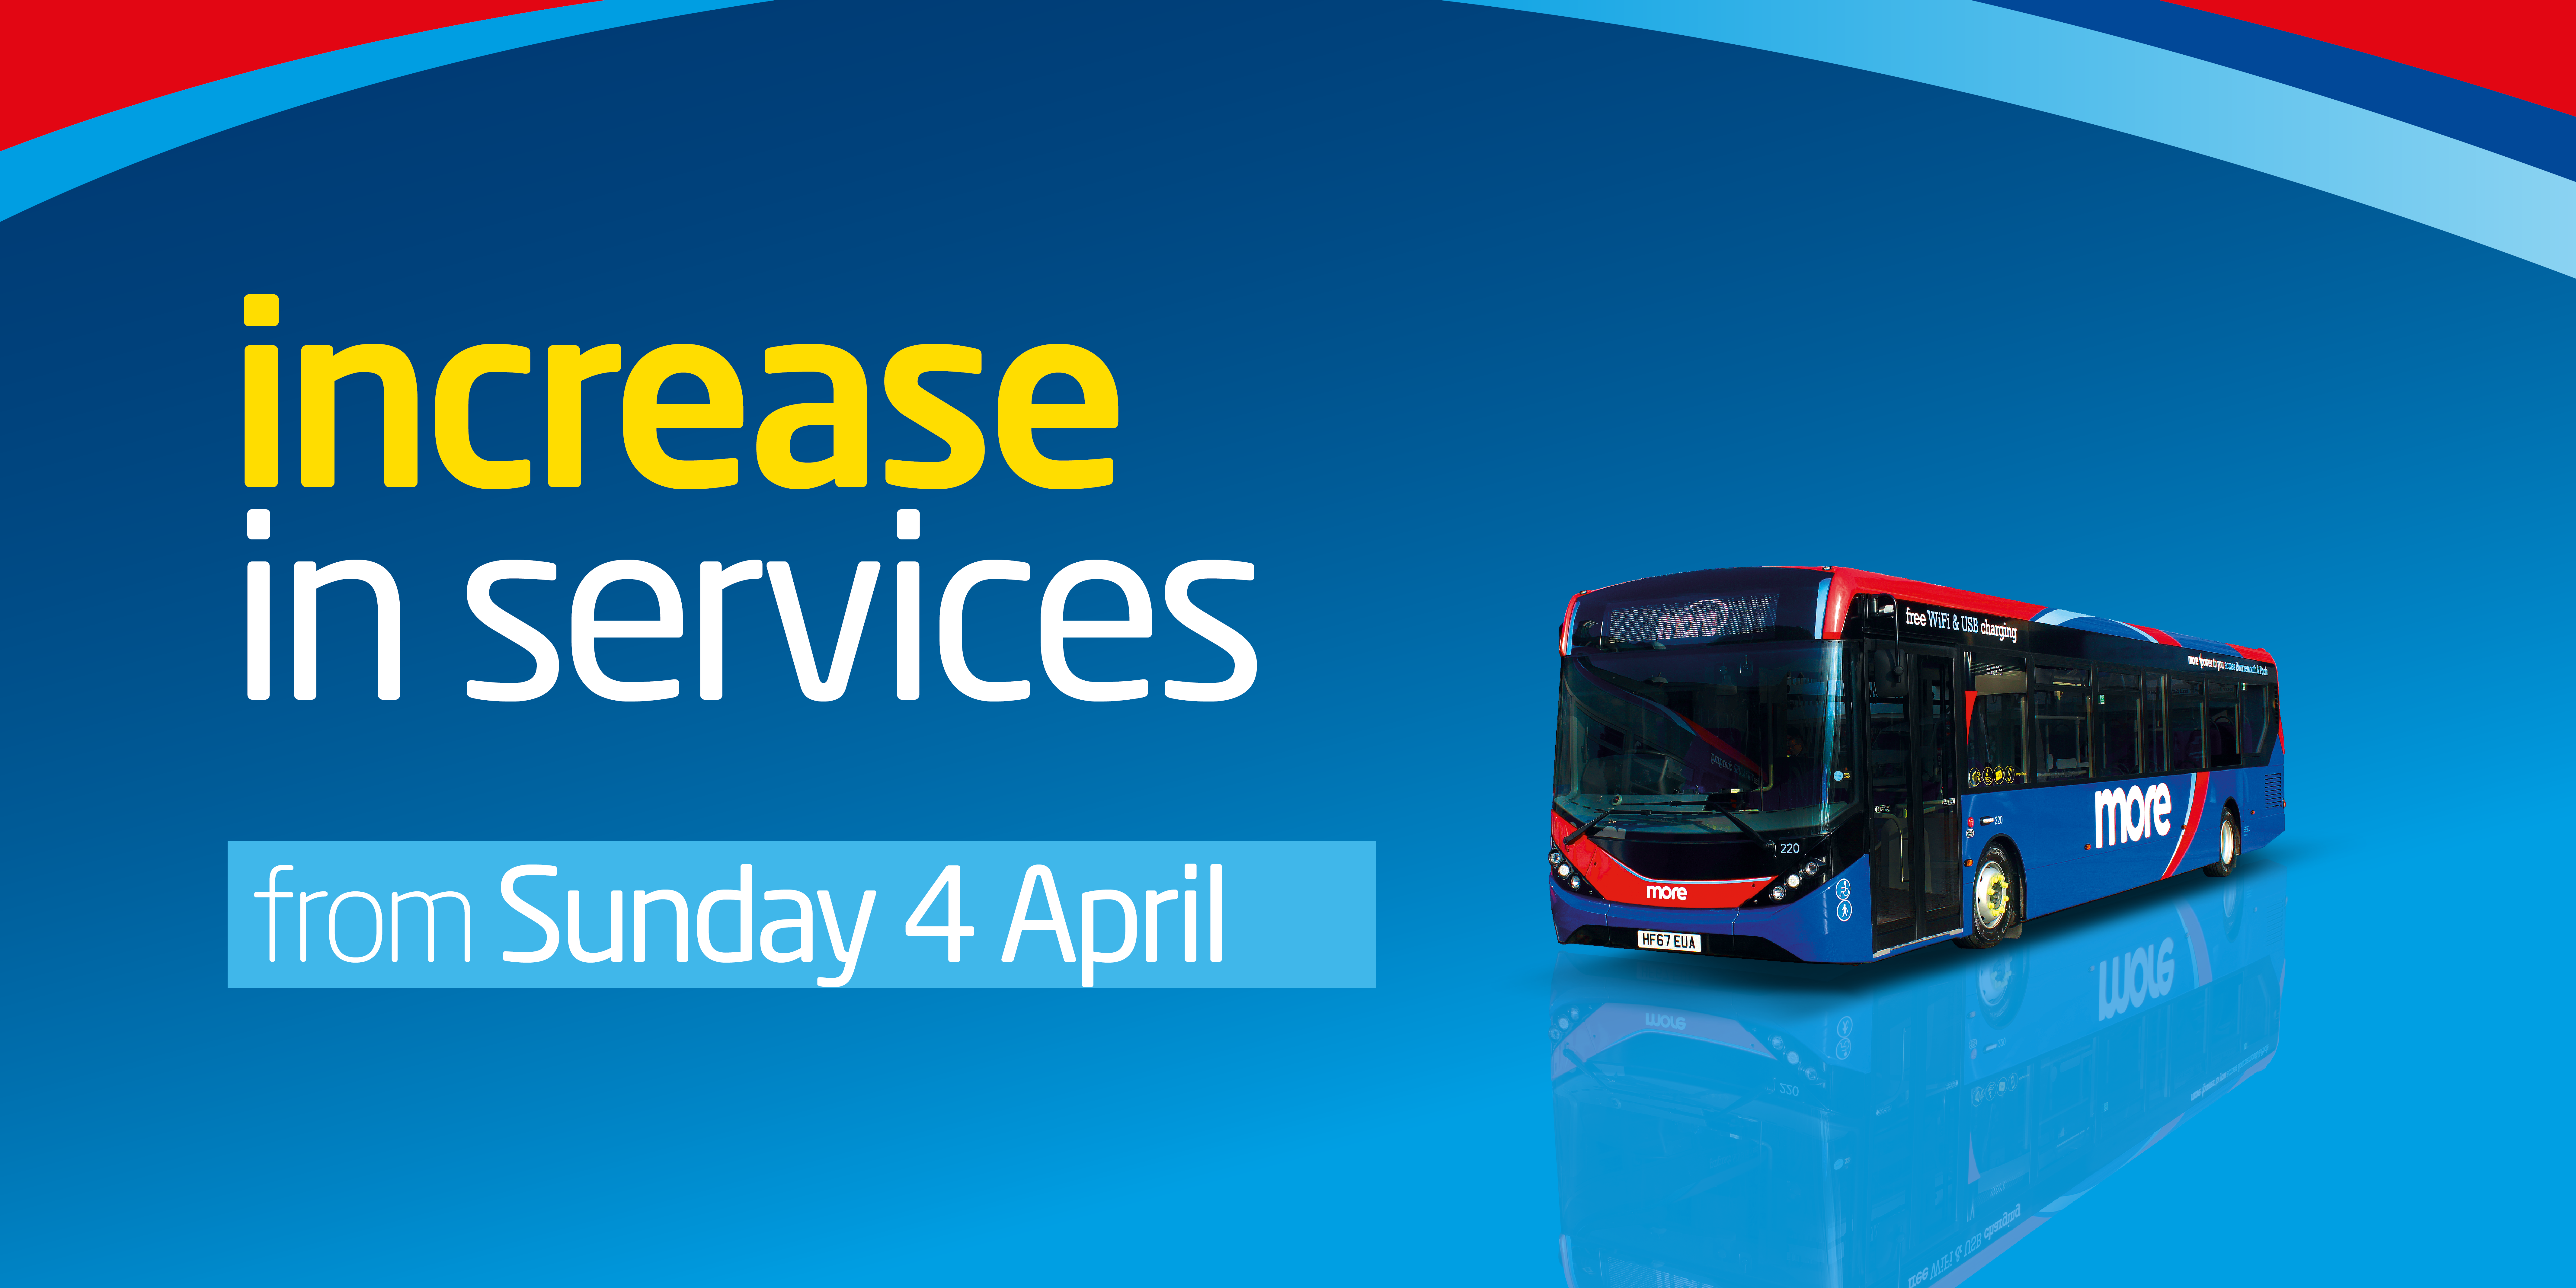 Image with a bus and text reading 'increase in services from Sunday 4th April'